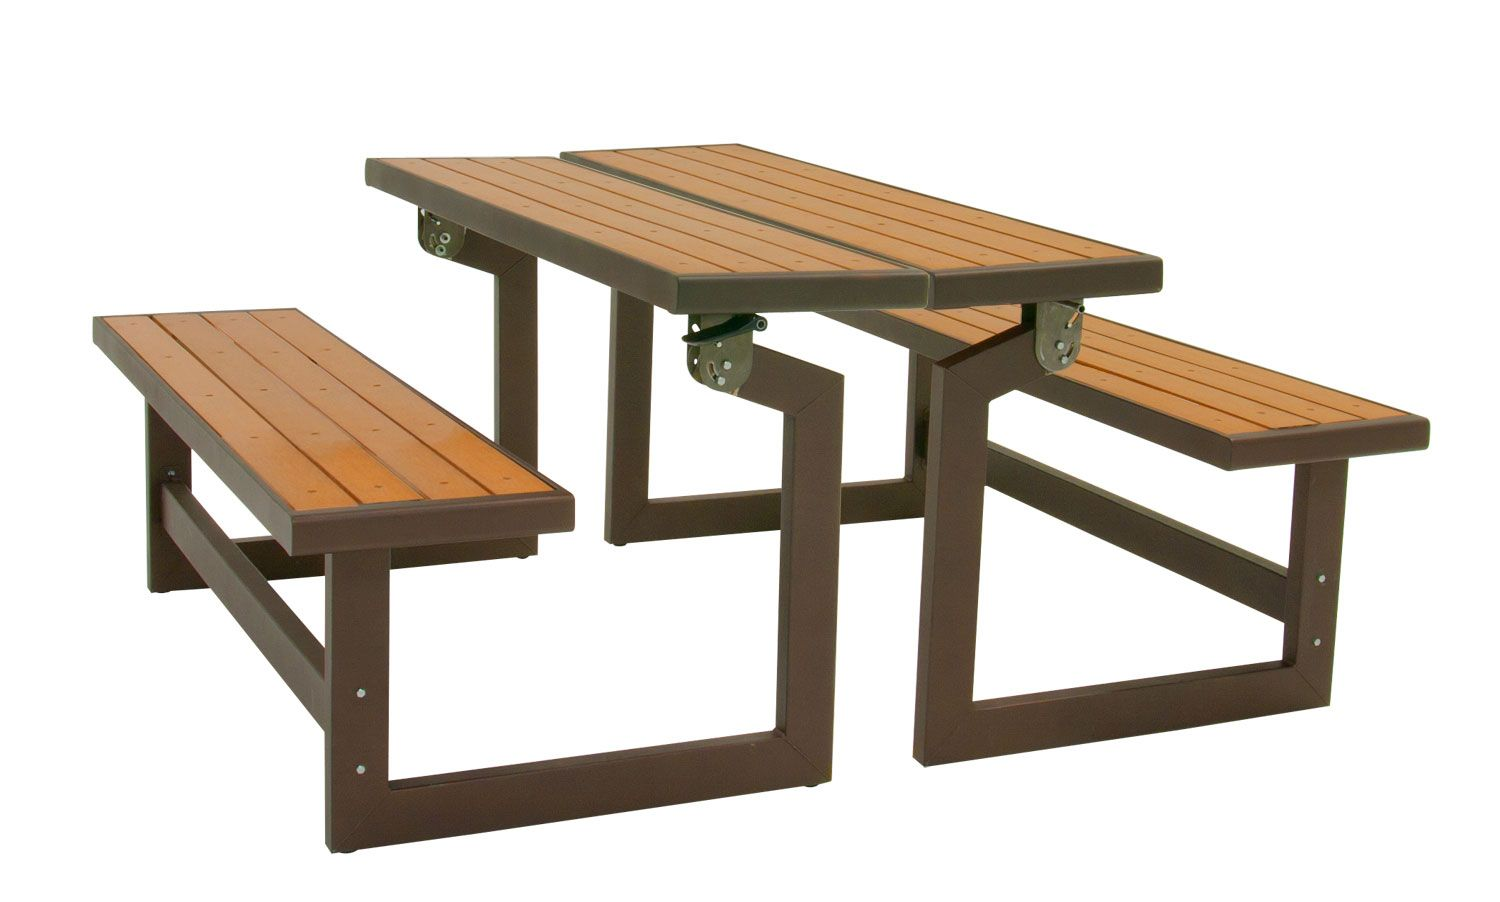 Enjoyable Two Convertible Benches Make A Nice Table And Chairs Open Caraccident5 Cool Chair Designs And Ideas Caraccident5Info